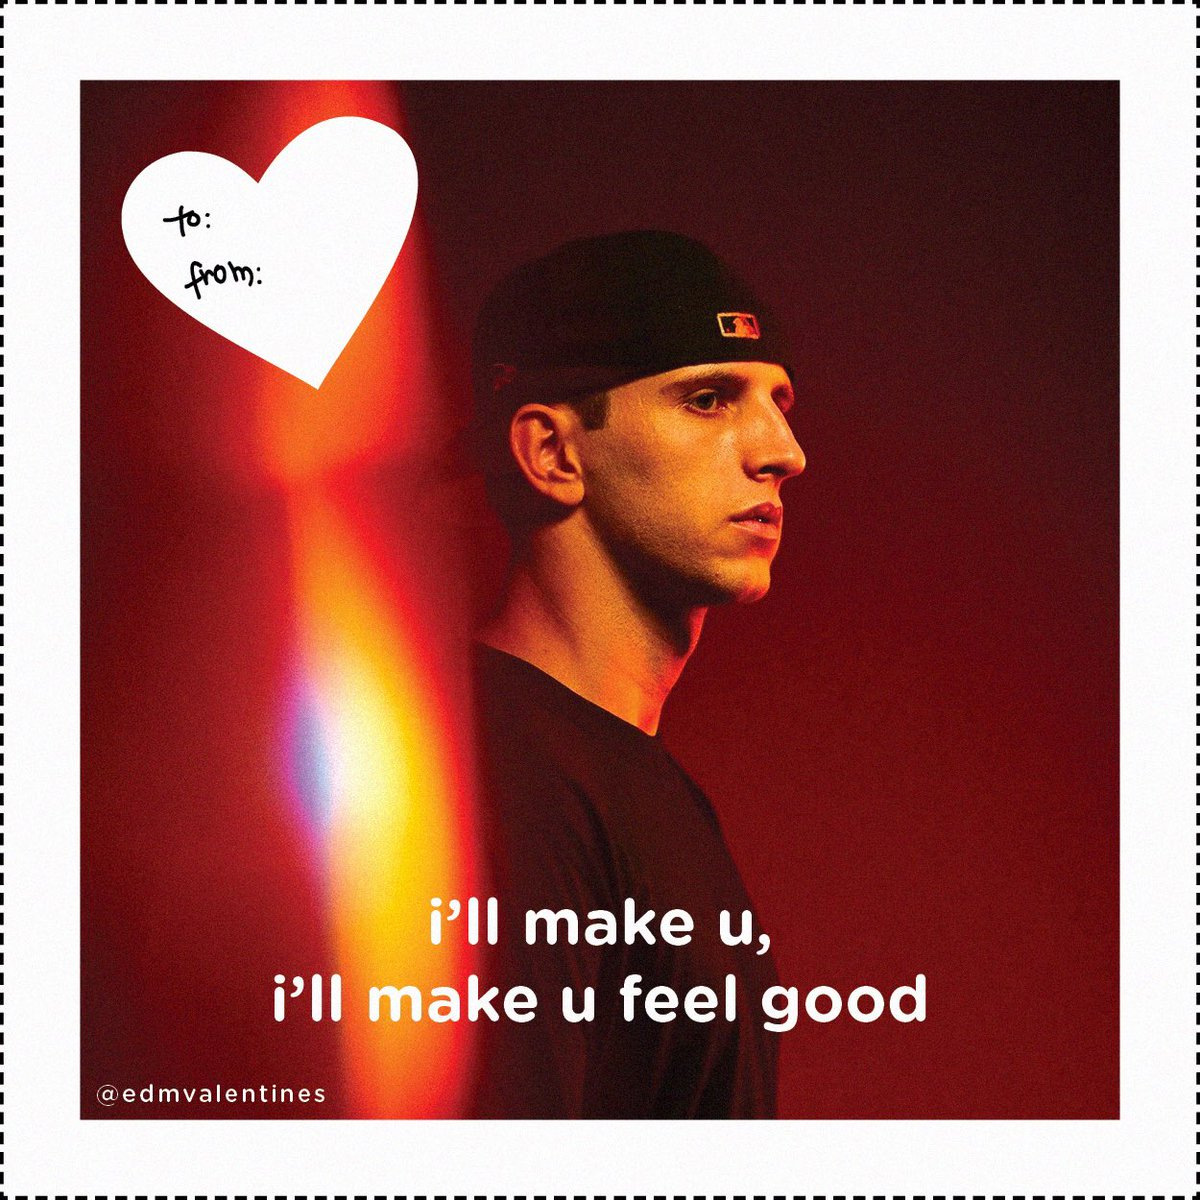 EDM Twitter Just Blessed Us With The Best DJ Valentines [MUST SEE]